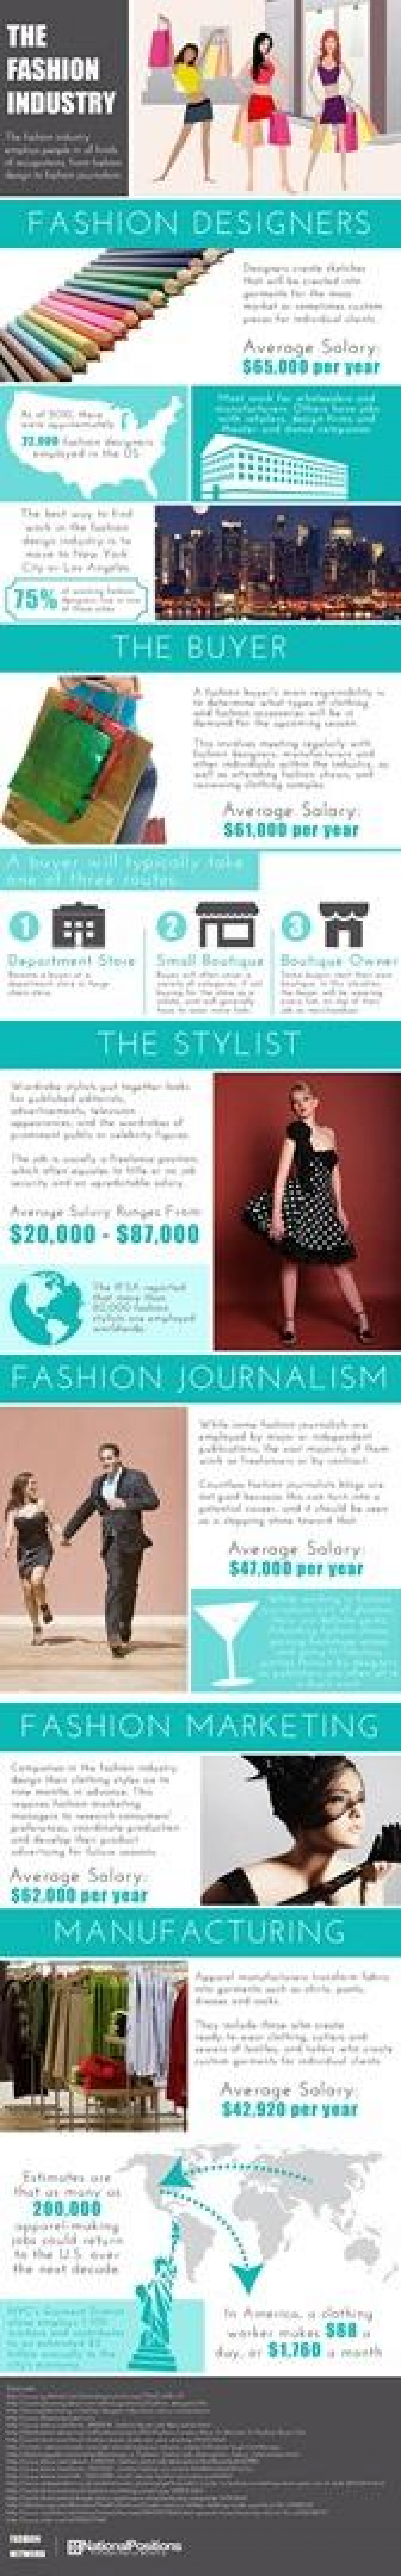 The Fashion Industries Employment Stats Infographic